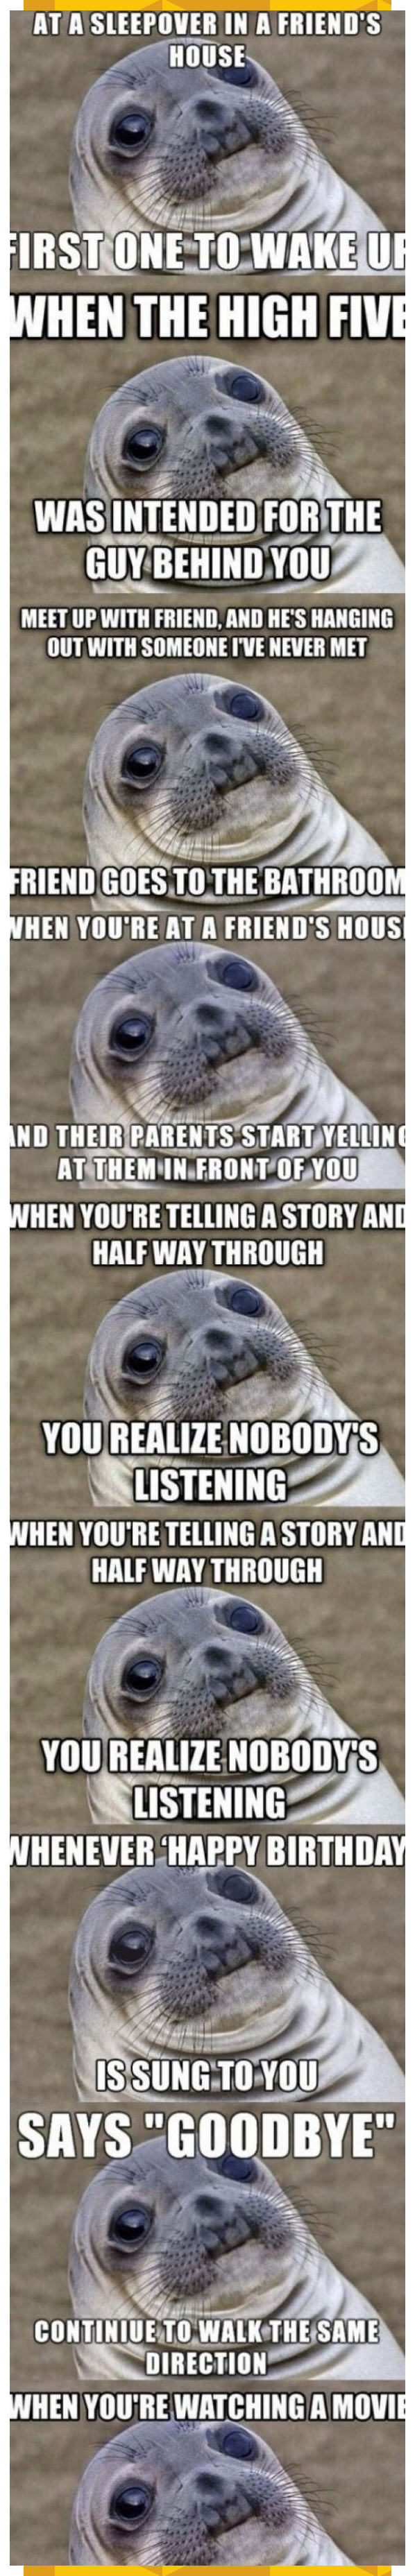 9 Awkward Moments You Have In Common With This Seal Funnypictures Funny Pictu In 2020 Fun Quotes Funny Awkward Moments Funny Faces Quotes